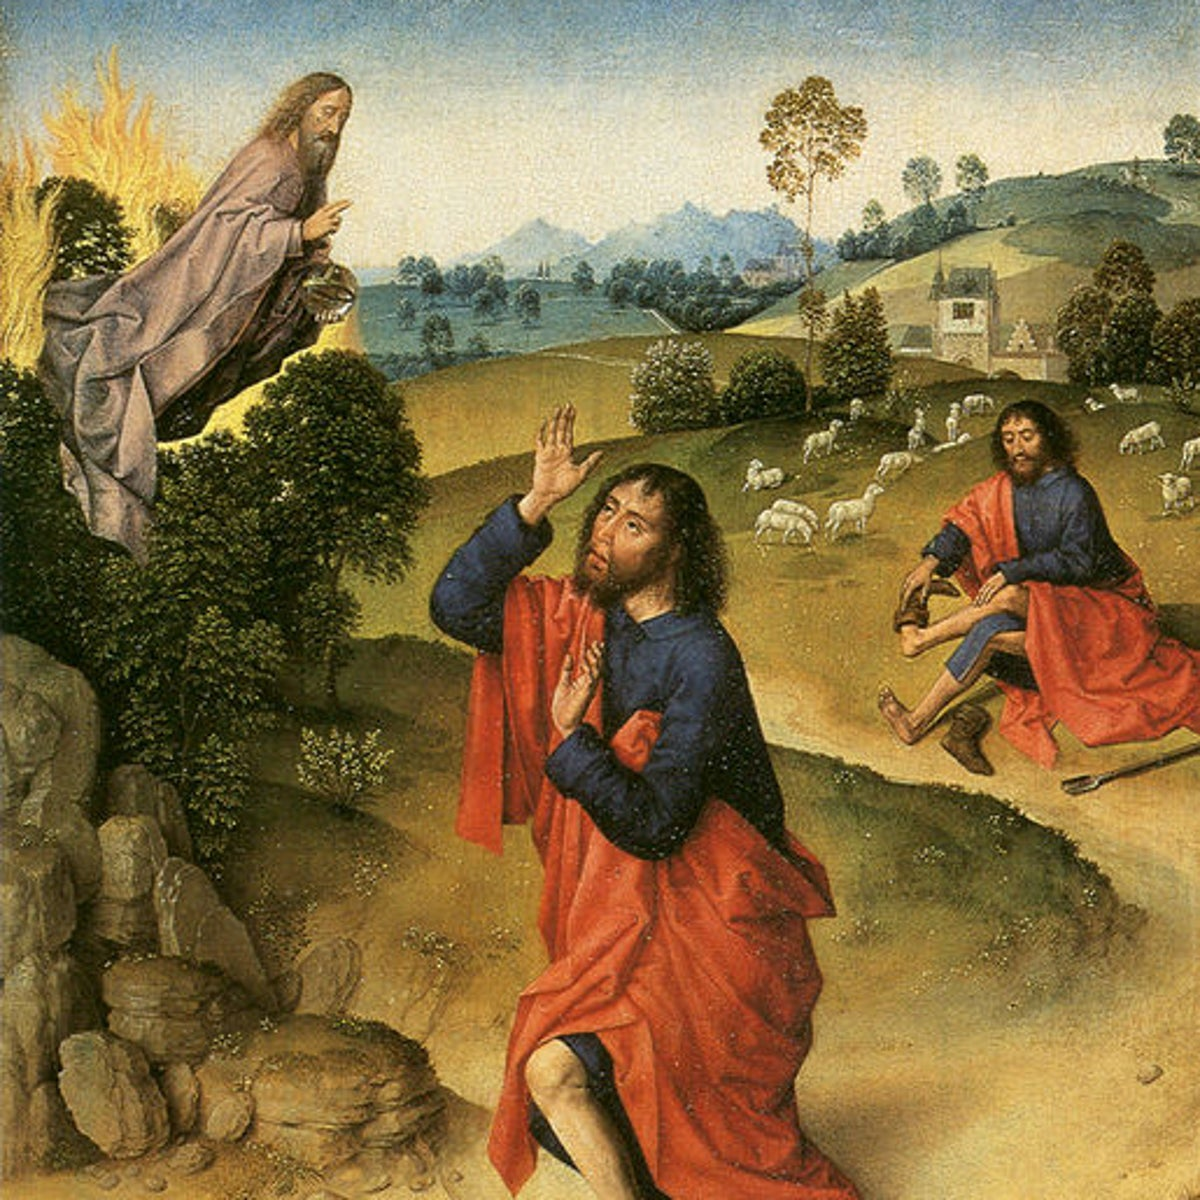 Moses and the Burning Bush, a painting attributed to Dirk Bouts, circa 1450-1475.